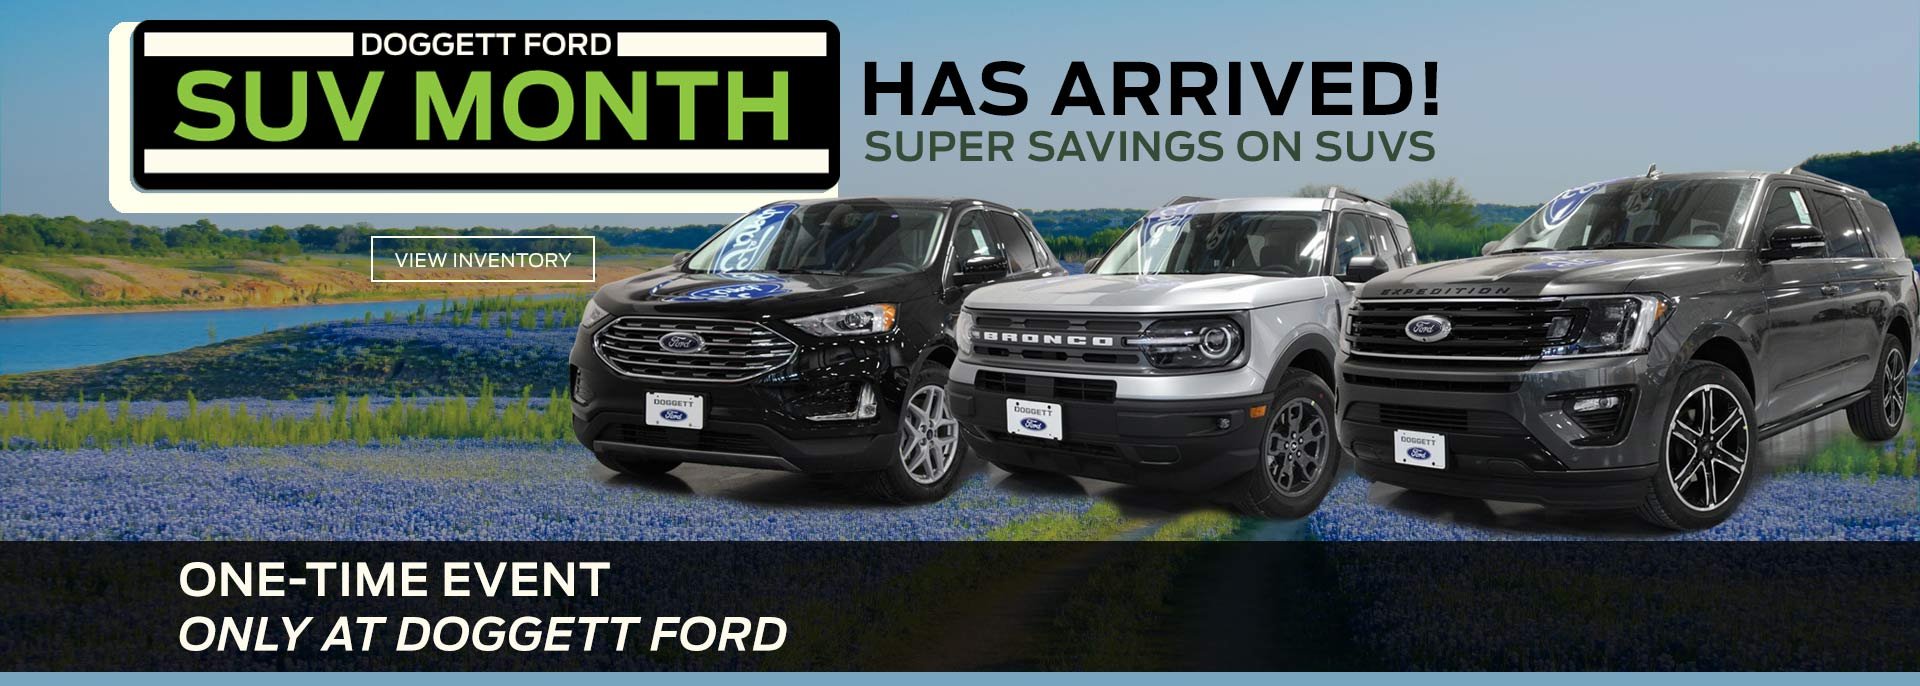 SUV Month with Super Savings at Doggett Ford